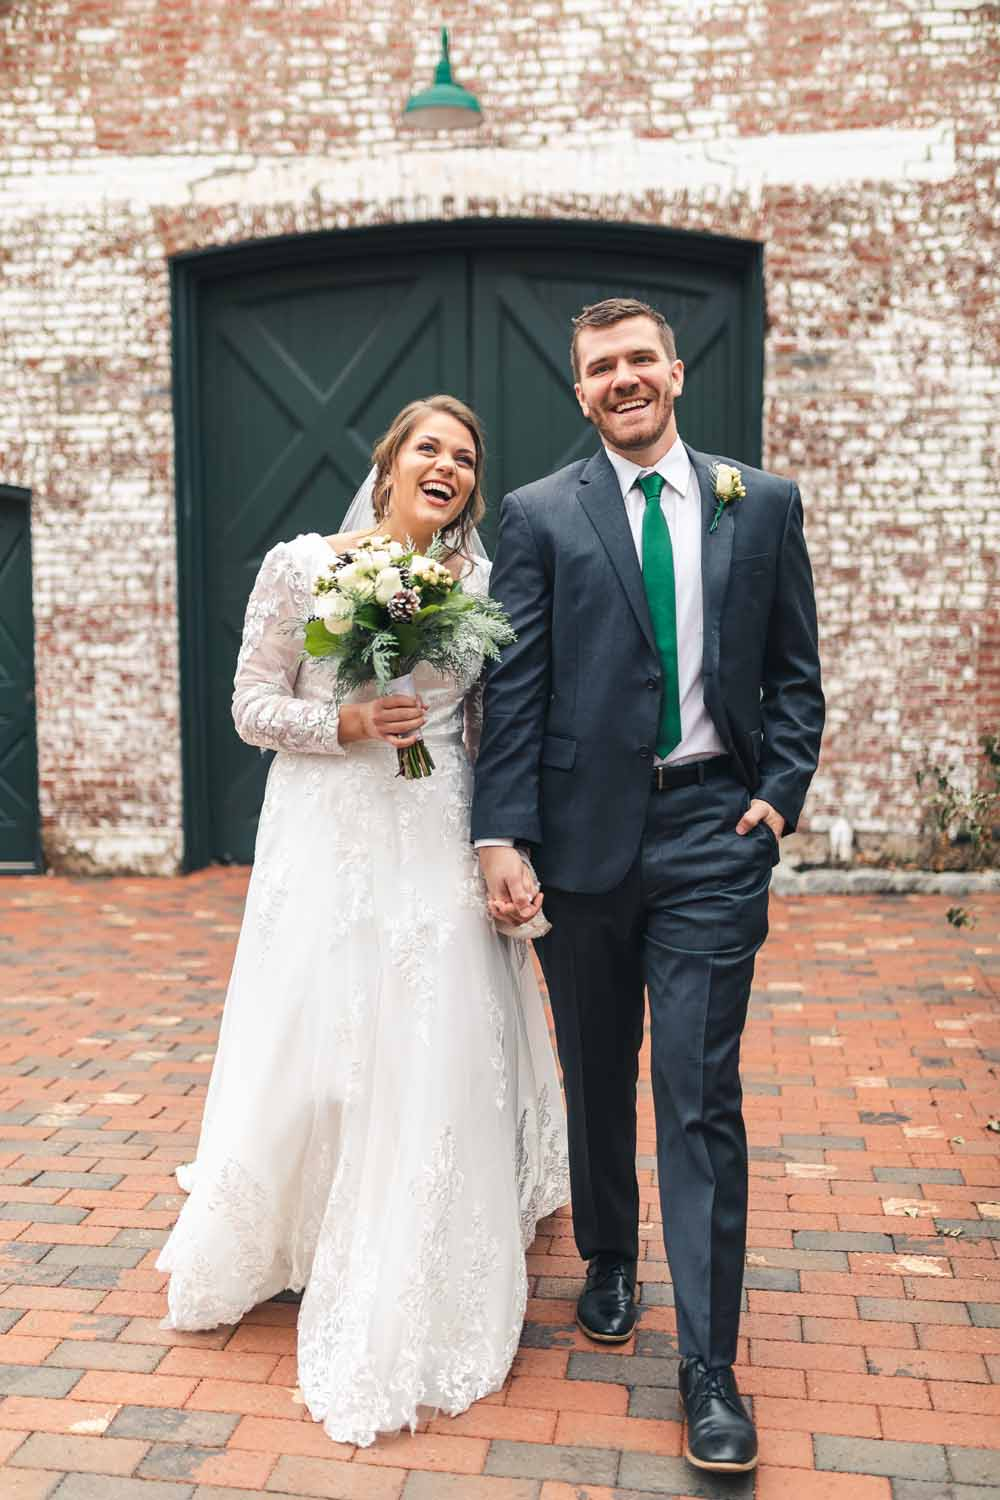 Bride and groom hold hands and walk together, laughing, after first look